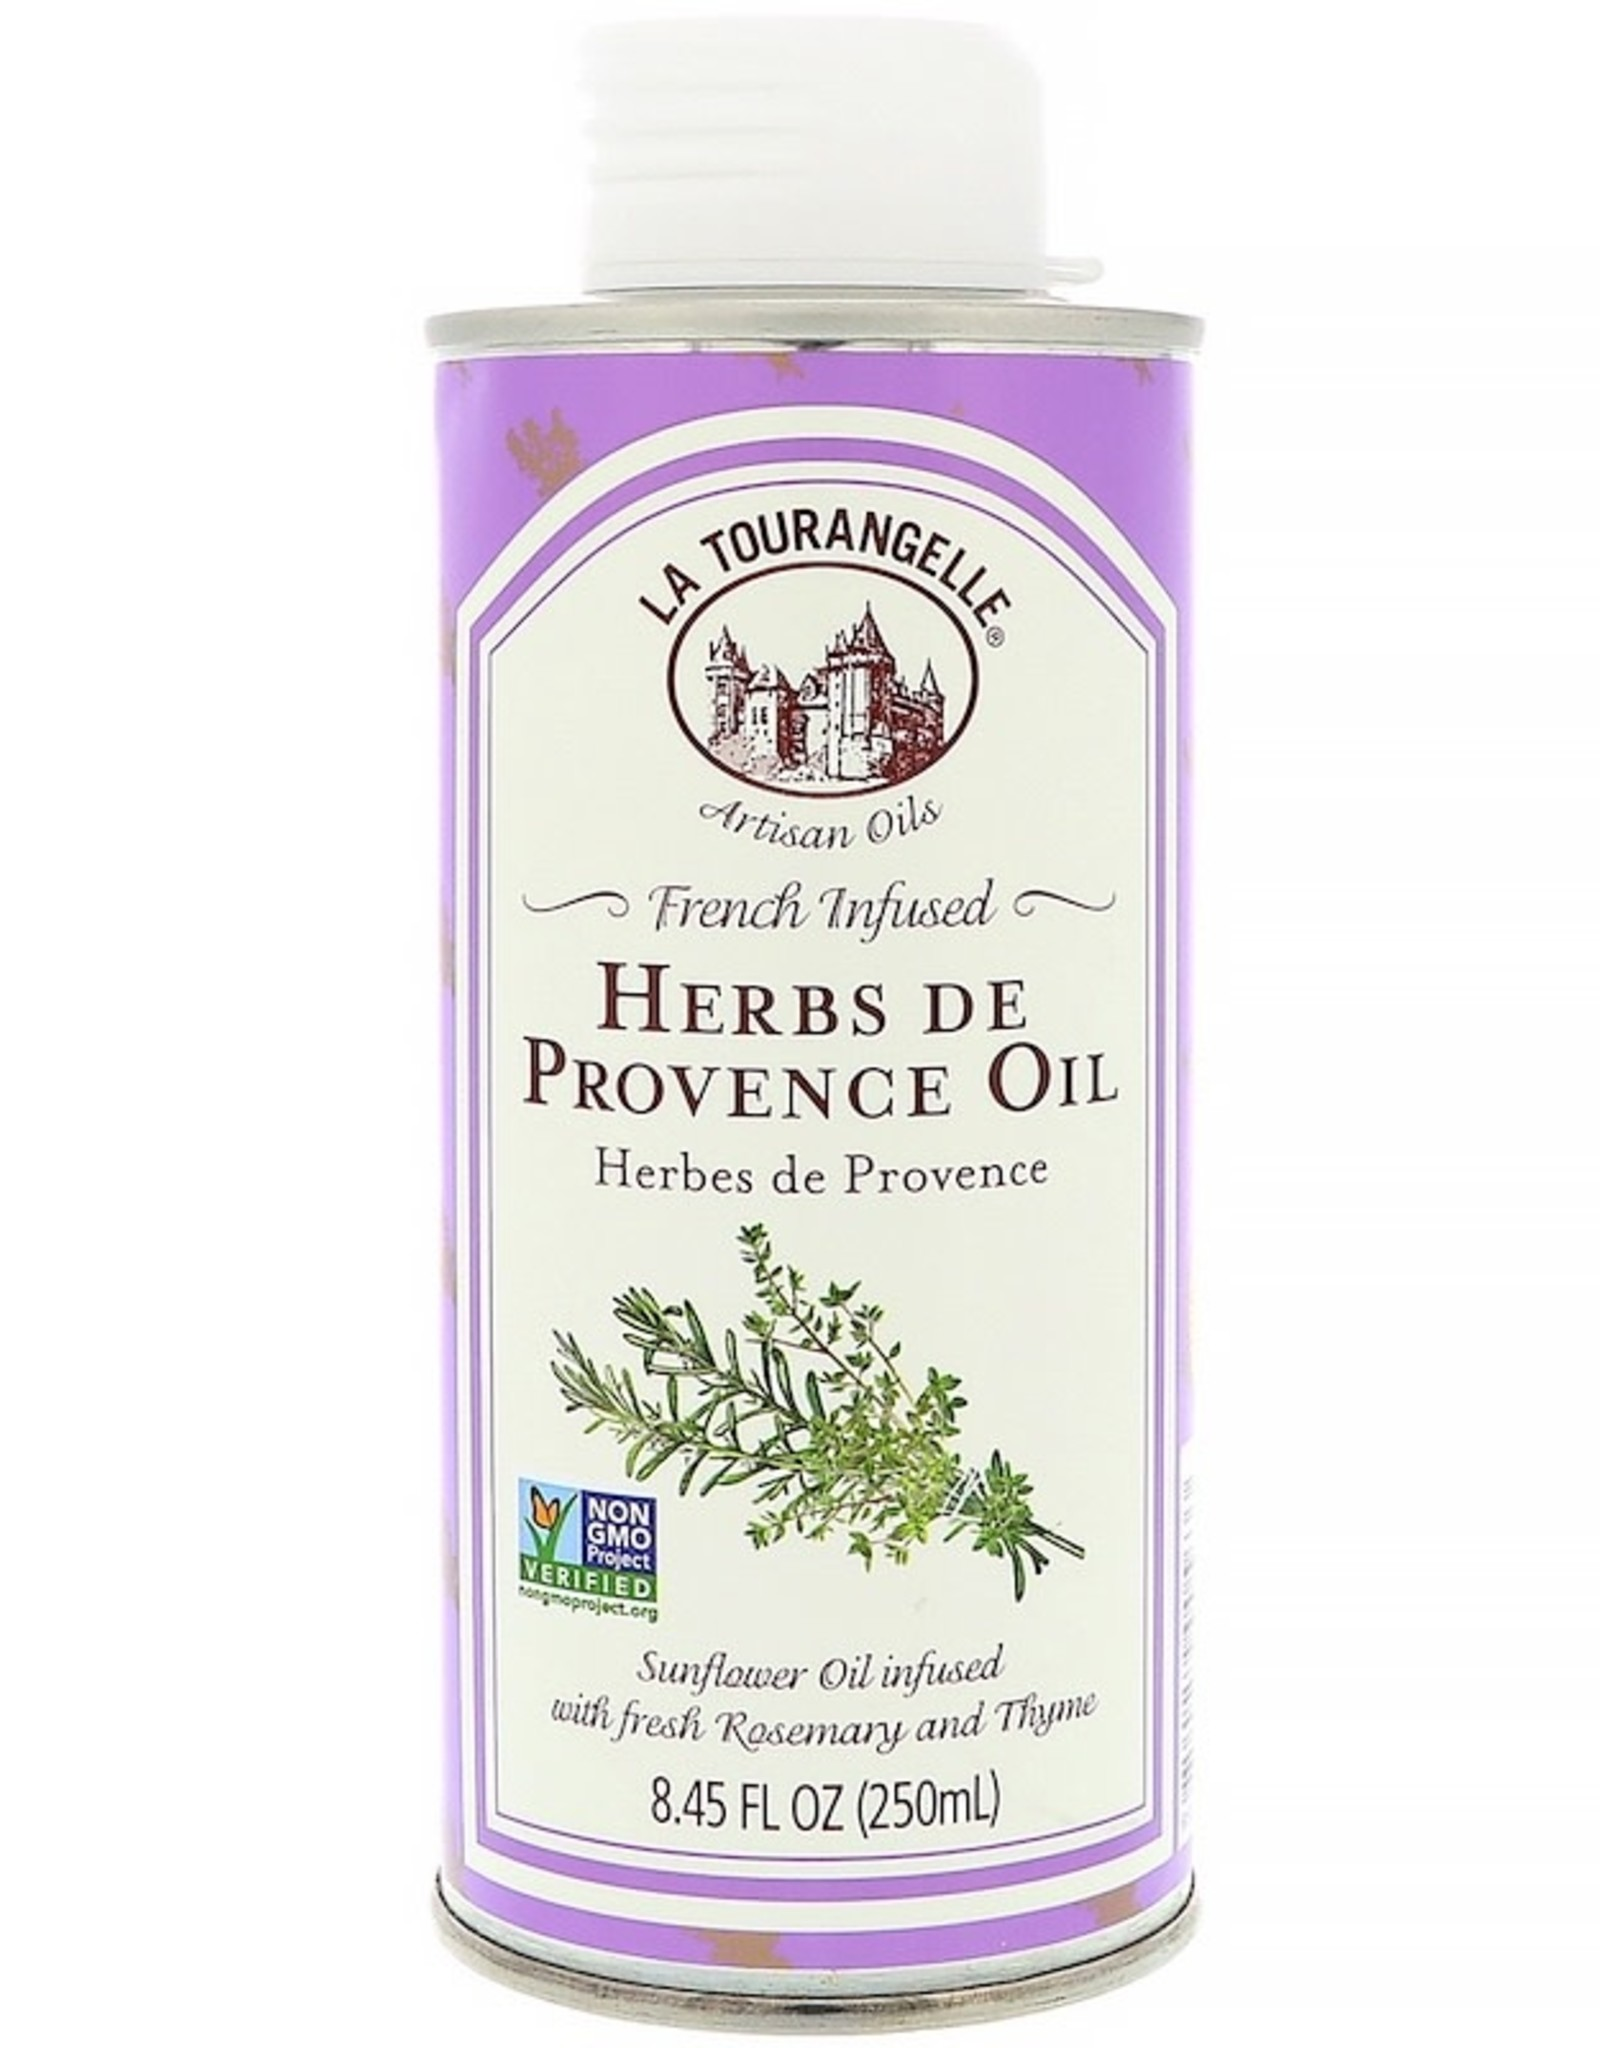 La Tourangelle La Tourangelle - French Infused, Herbs de Provence Oil (250ml)